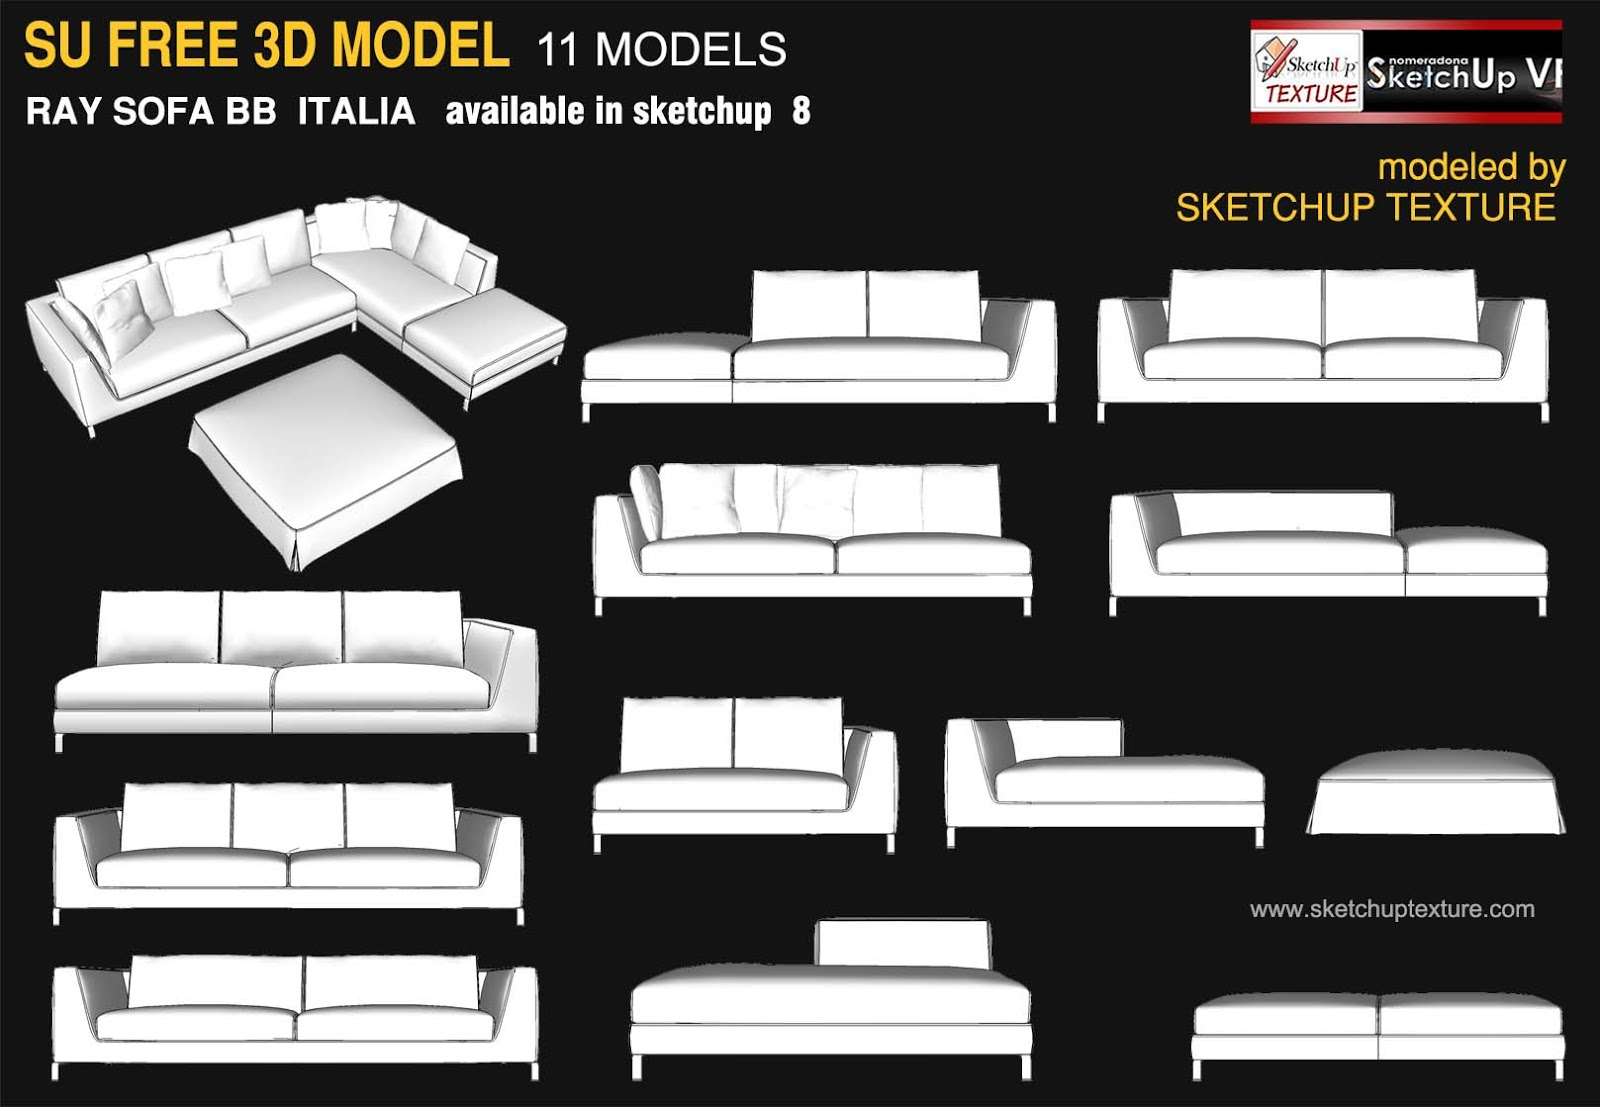 SKETCHUP TEXTURE Awesome Free Sketchup 3d Model Ray Sofa BB Italia